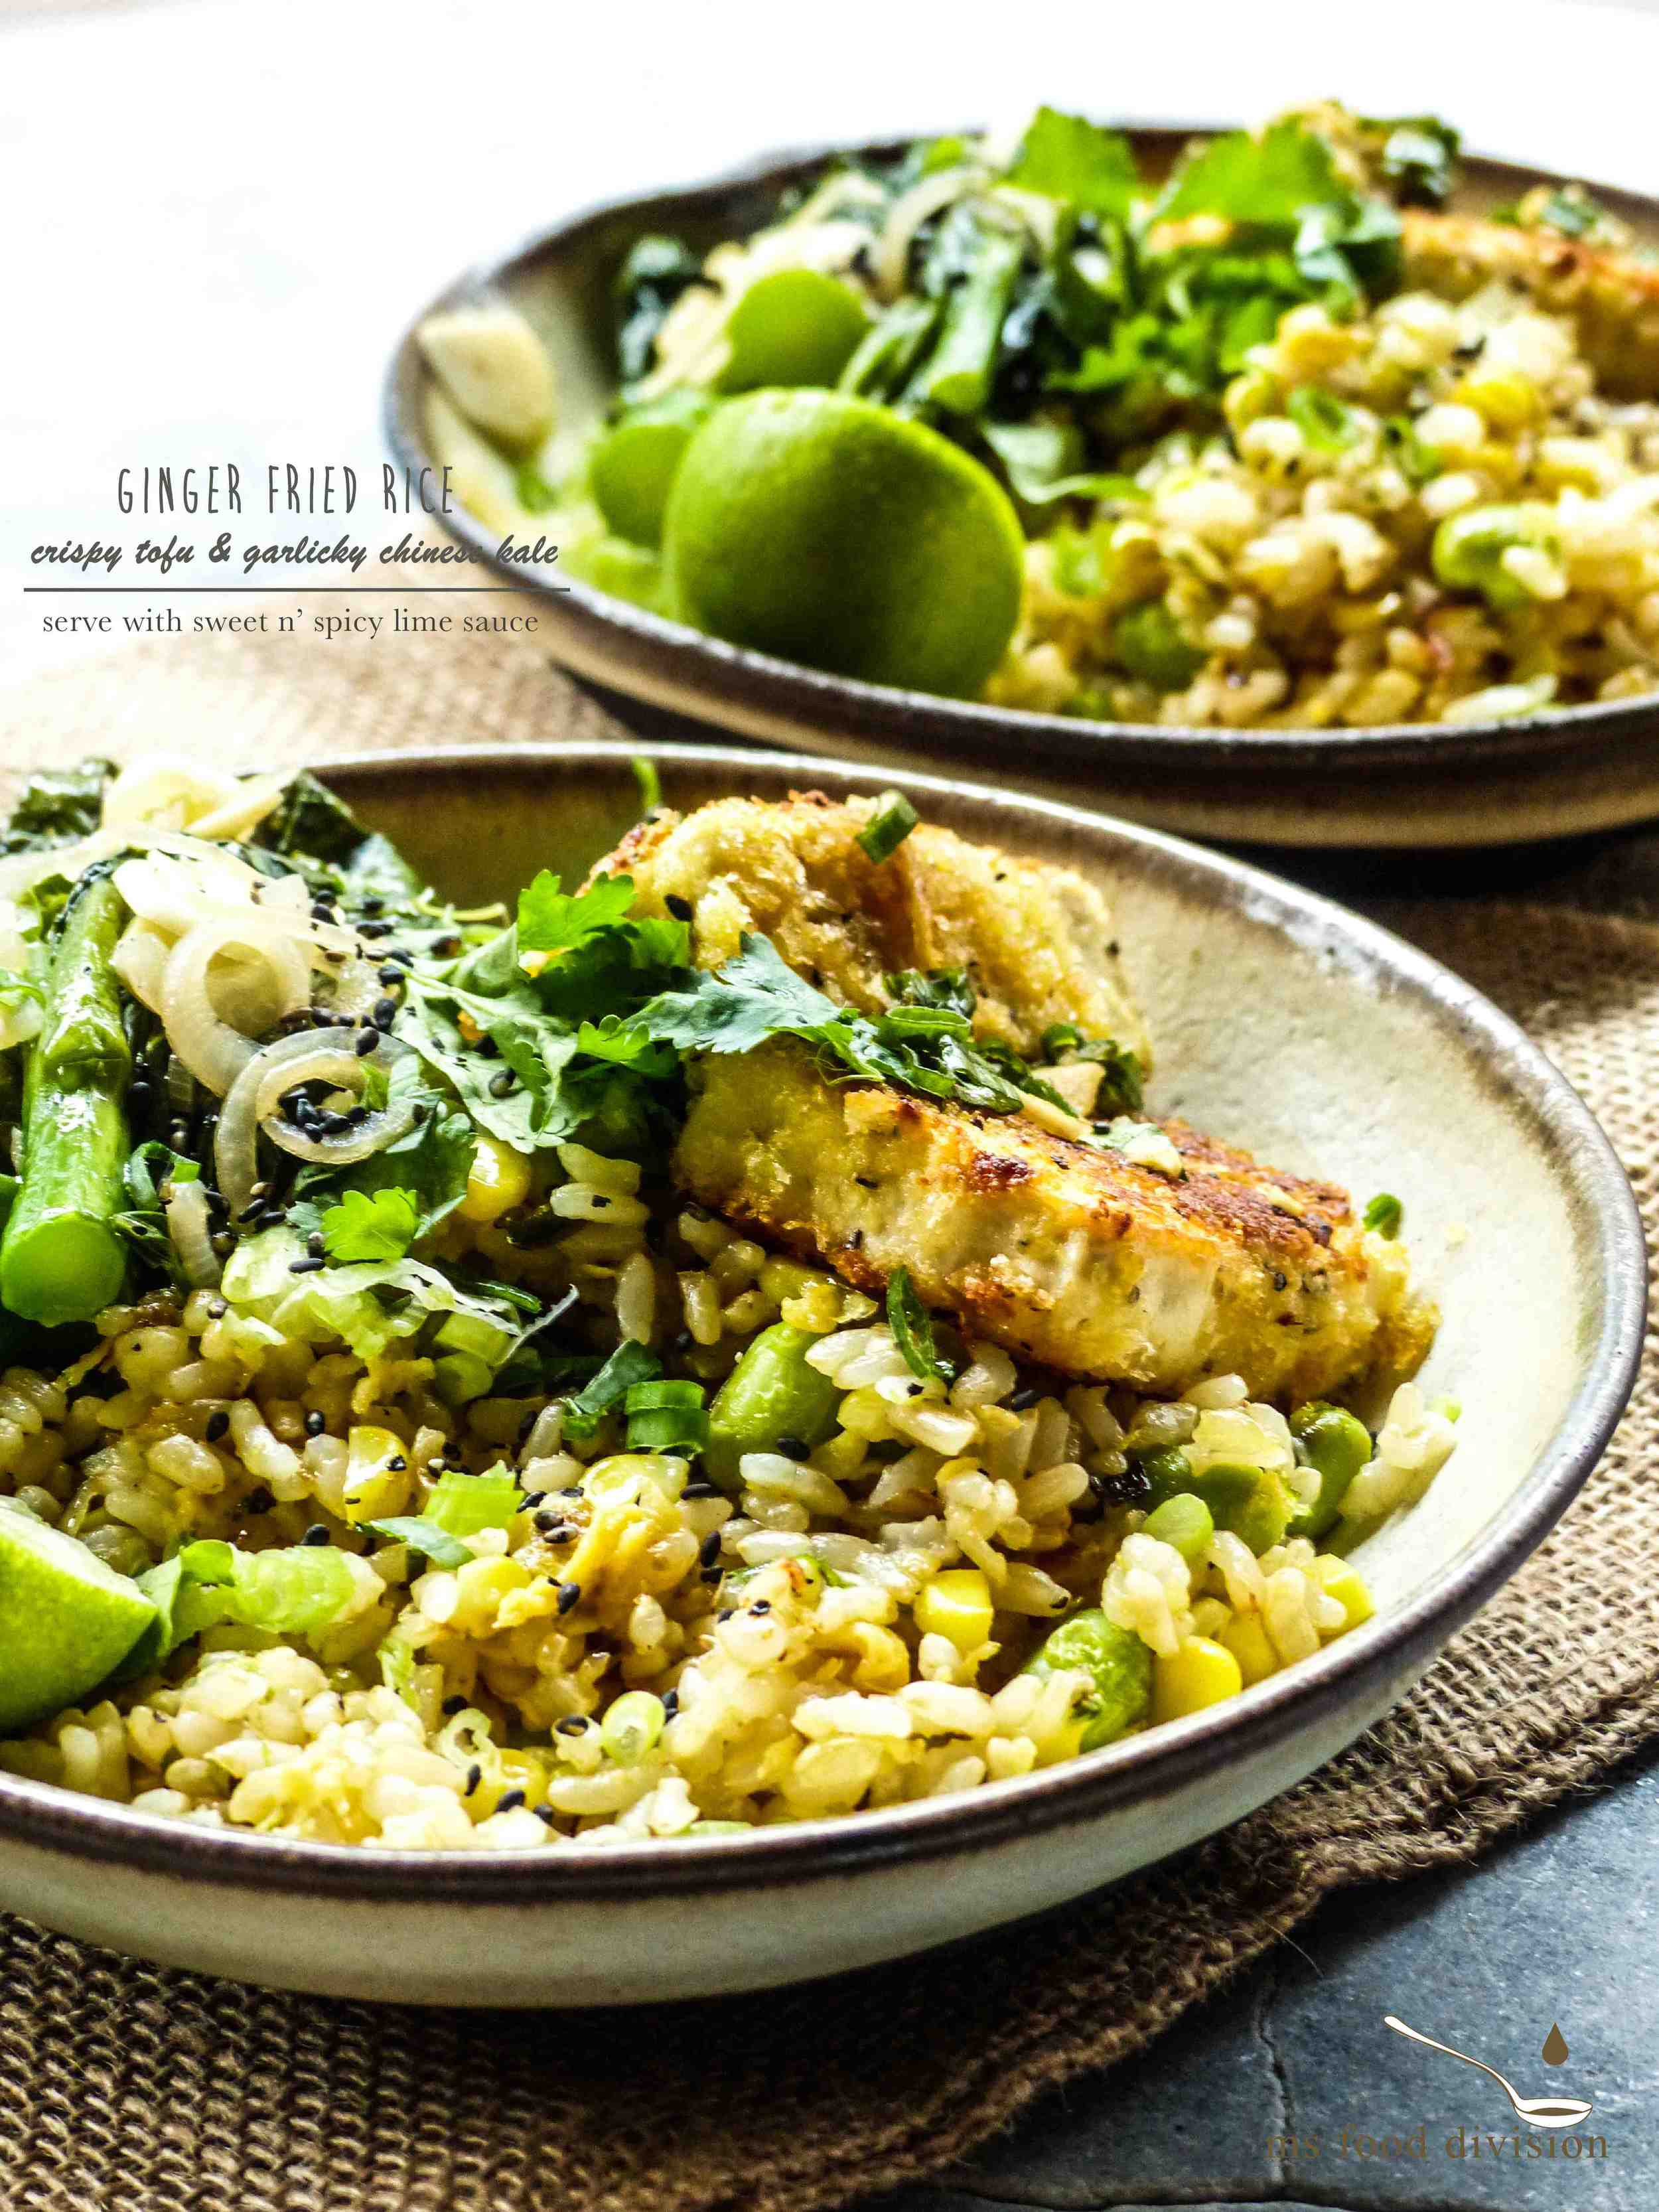 This dish is packed with flavors because I combined many fresh ingredients such as lime, honey, and ginger.